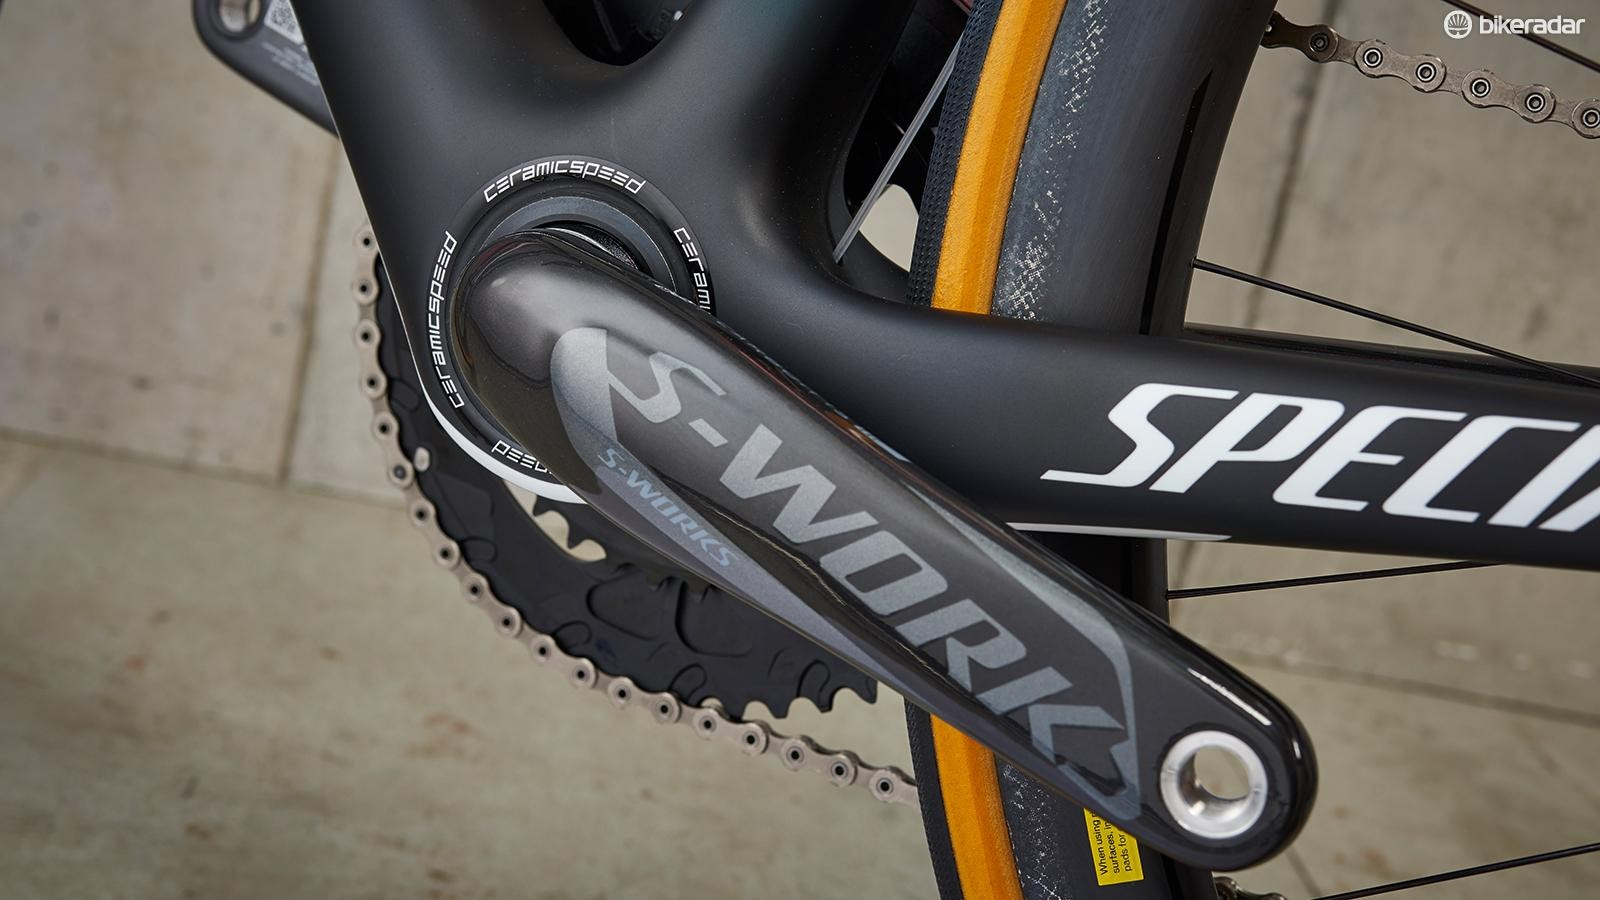 Meanwhile the Specialized S-Works crankset adds a certain carbon swoopiness